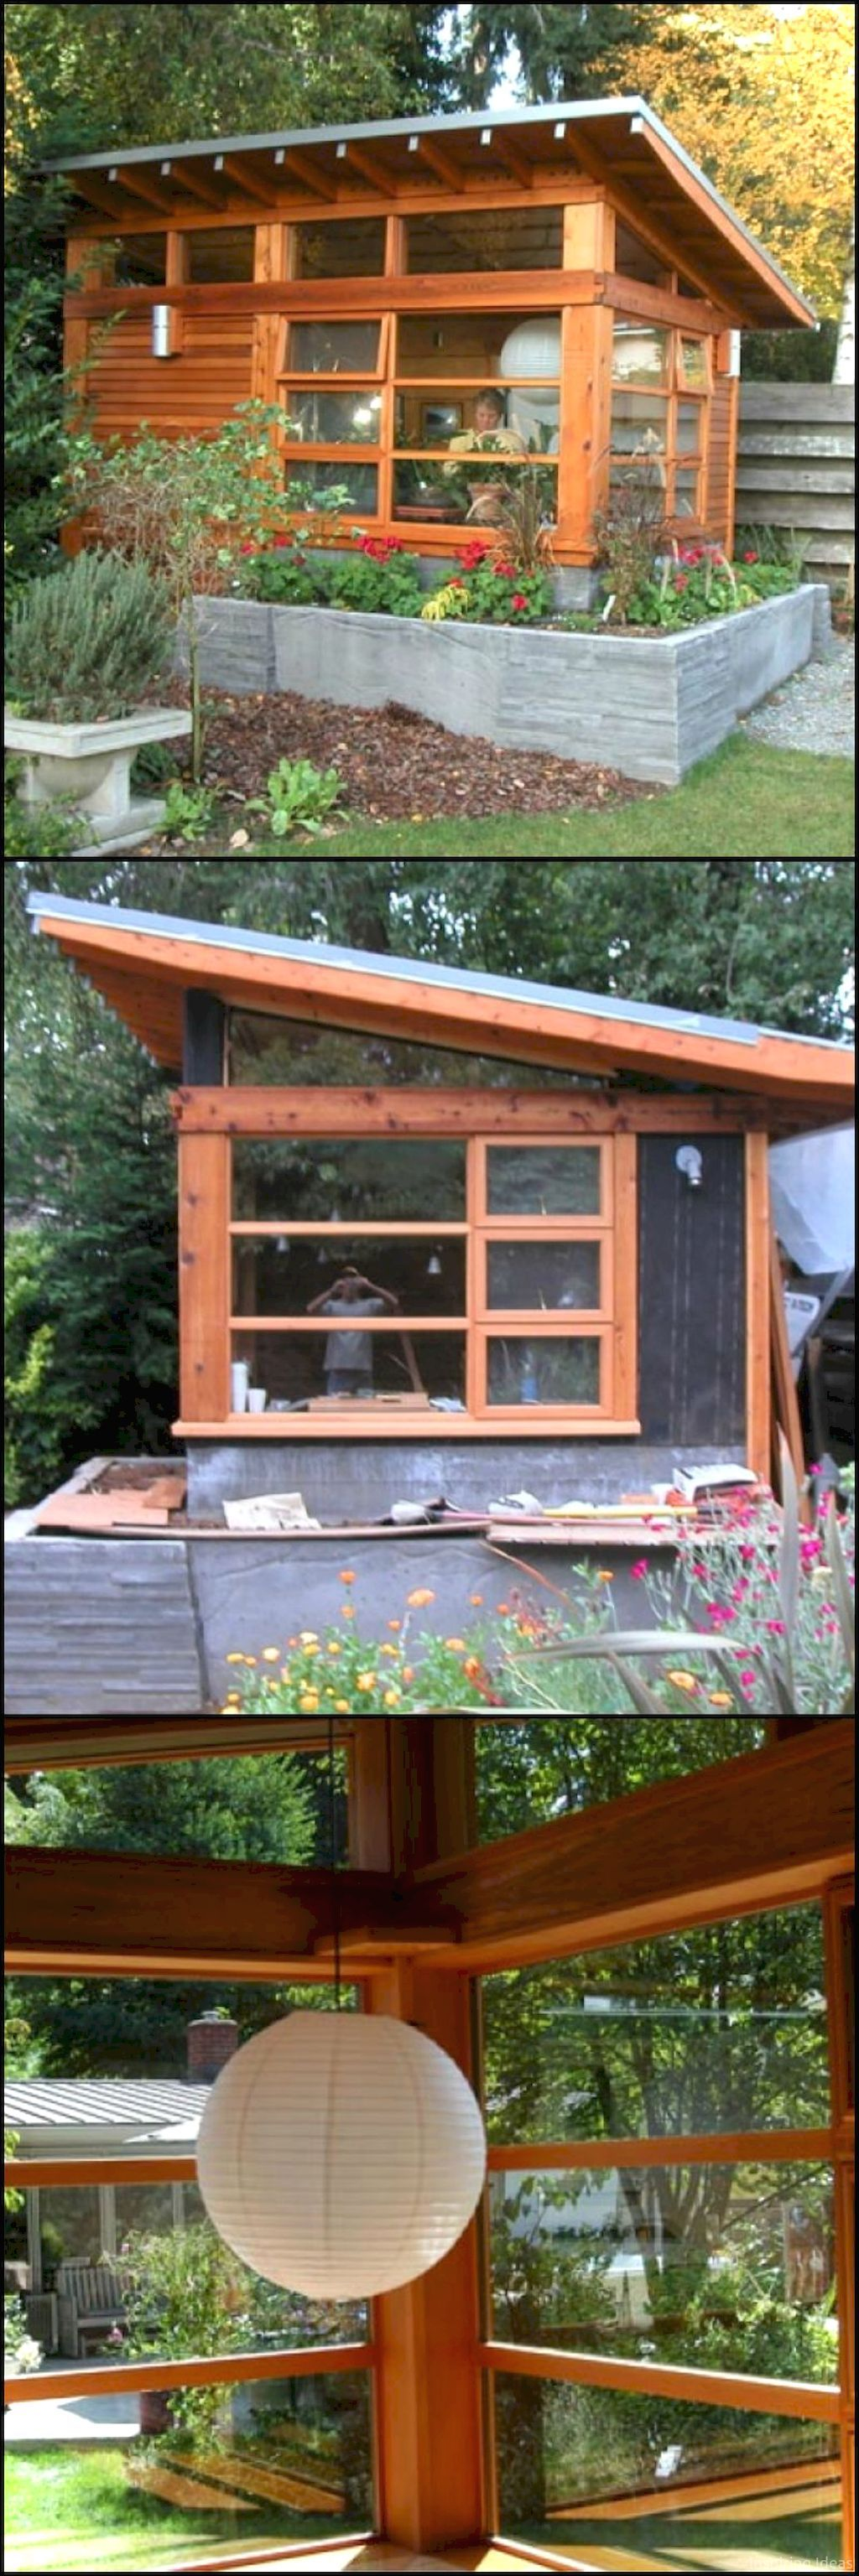 A lifestyle shed for my backyard office is my future vision Fully